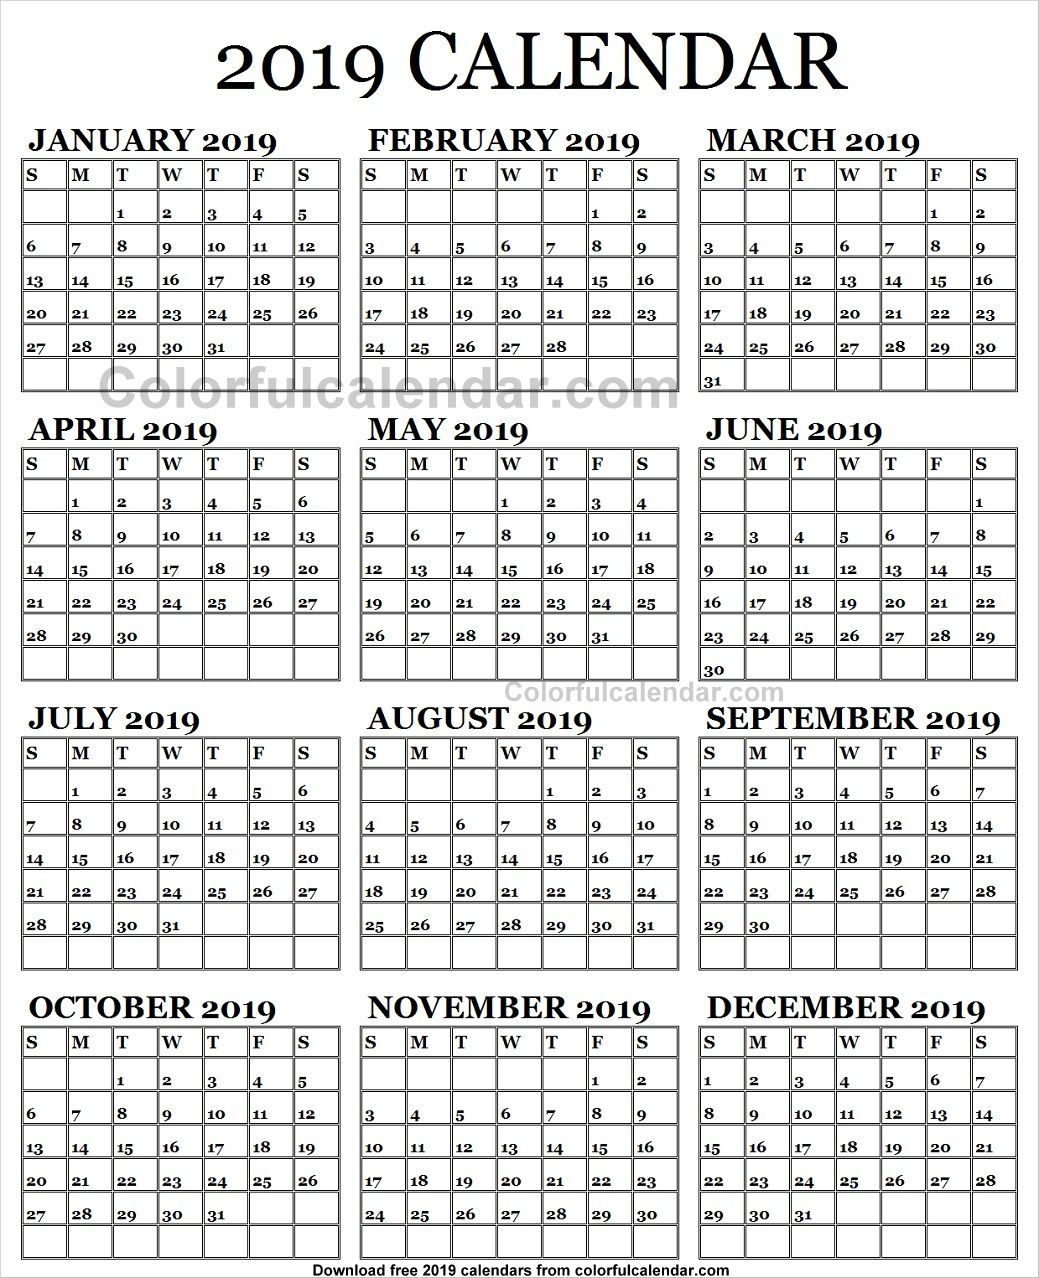 2019 Calendar English Template Cute With Images 2019 Calendar